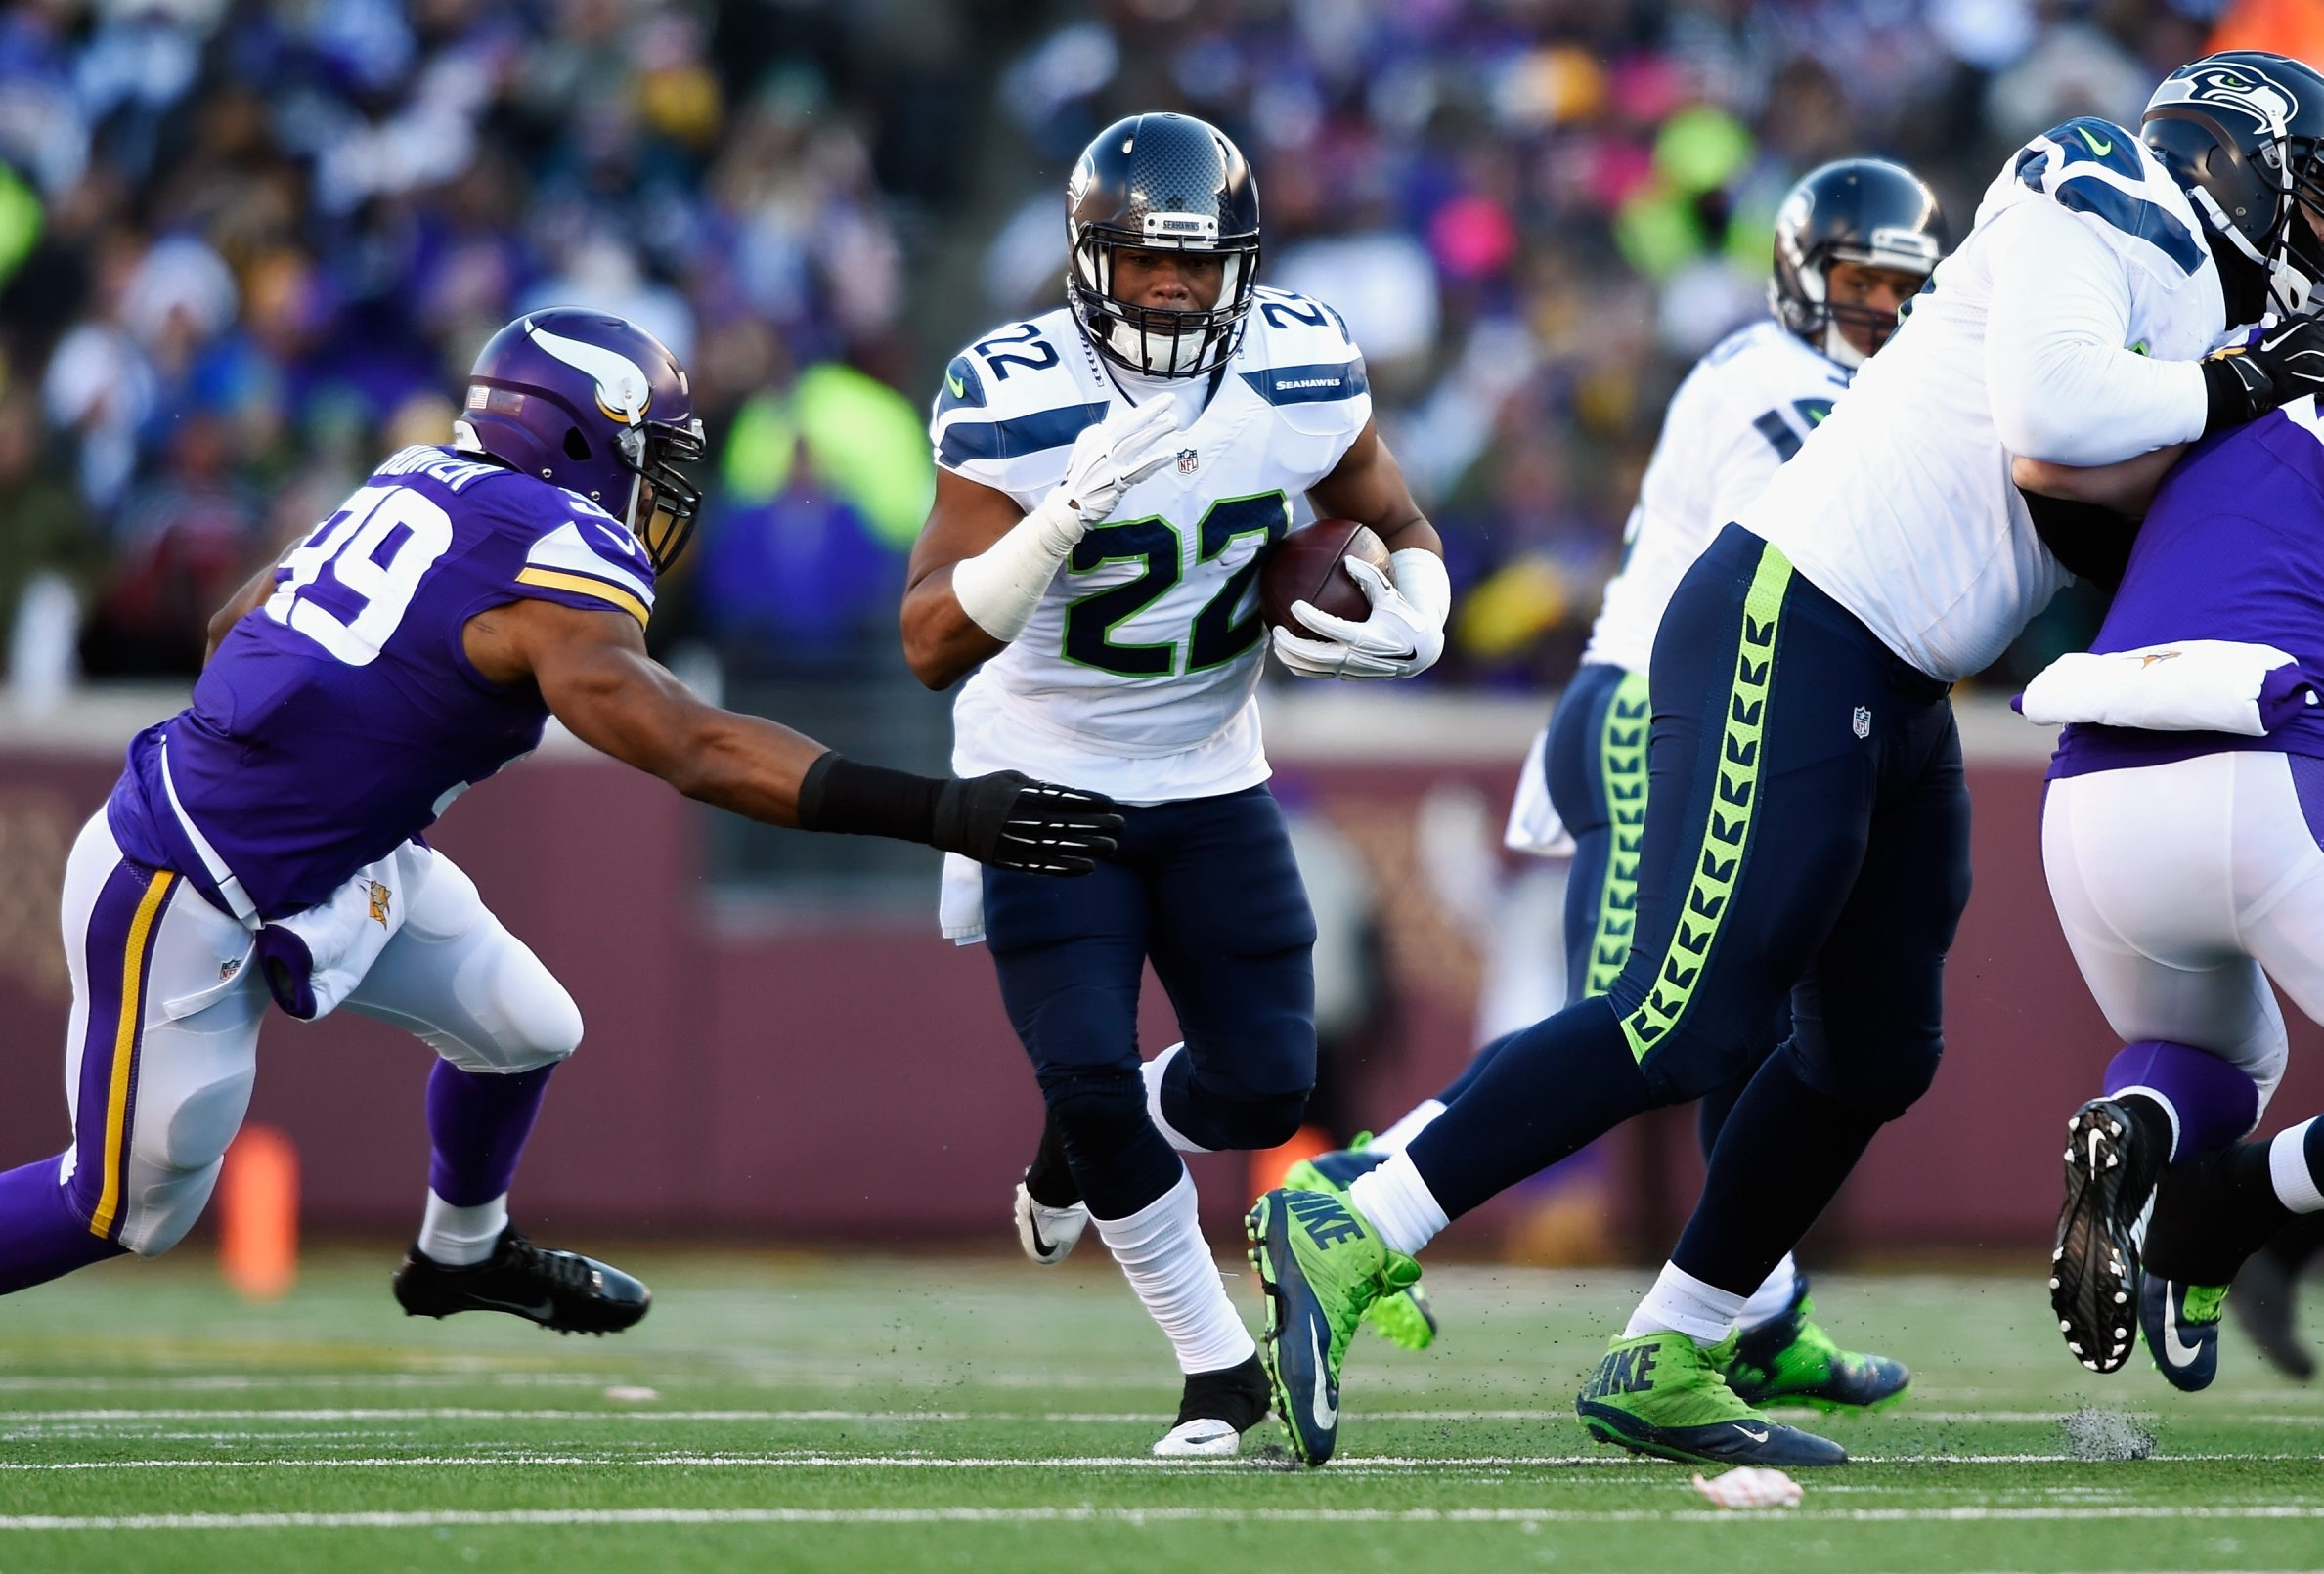 Fred Jackson of the Seattle Seahawks is one of three running backs, Marshawn Lynch and Bryce Brown are the other two, that were once a member of the Buffalo Bills.